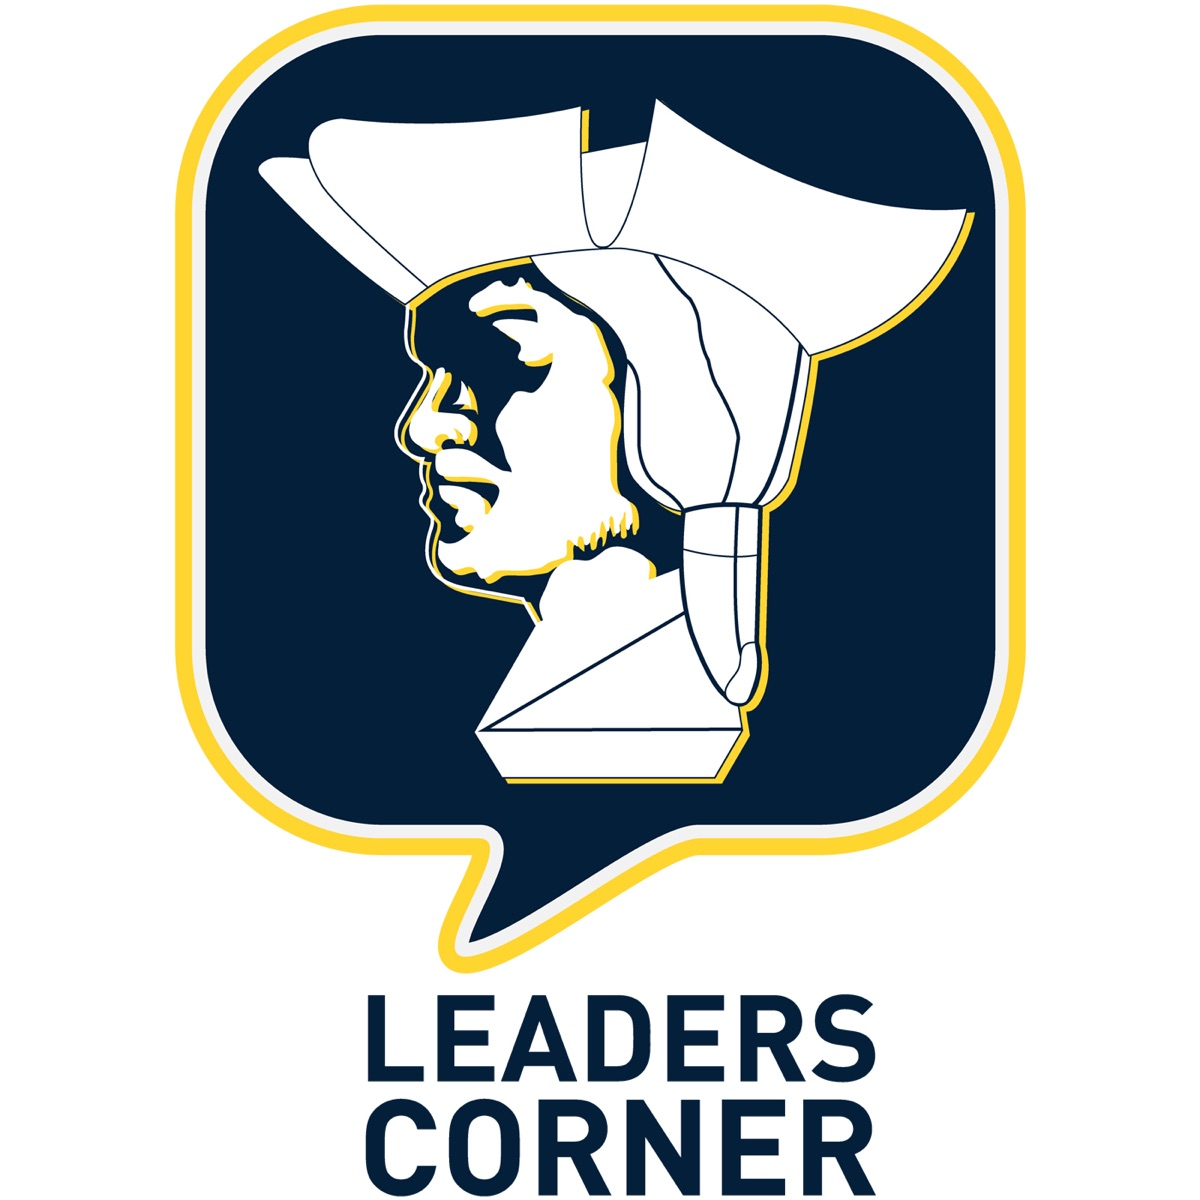 The Leaders Corner